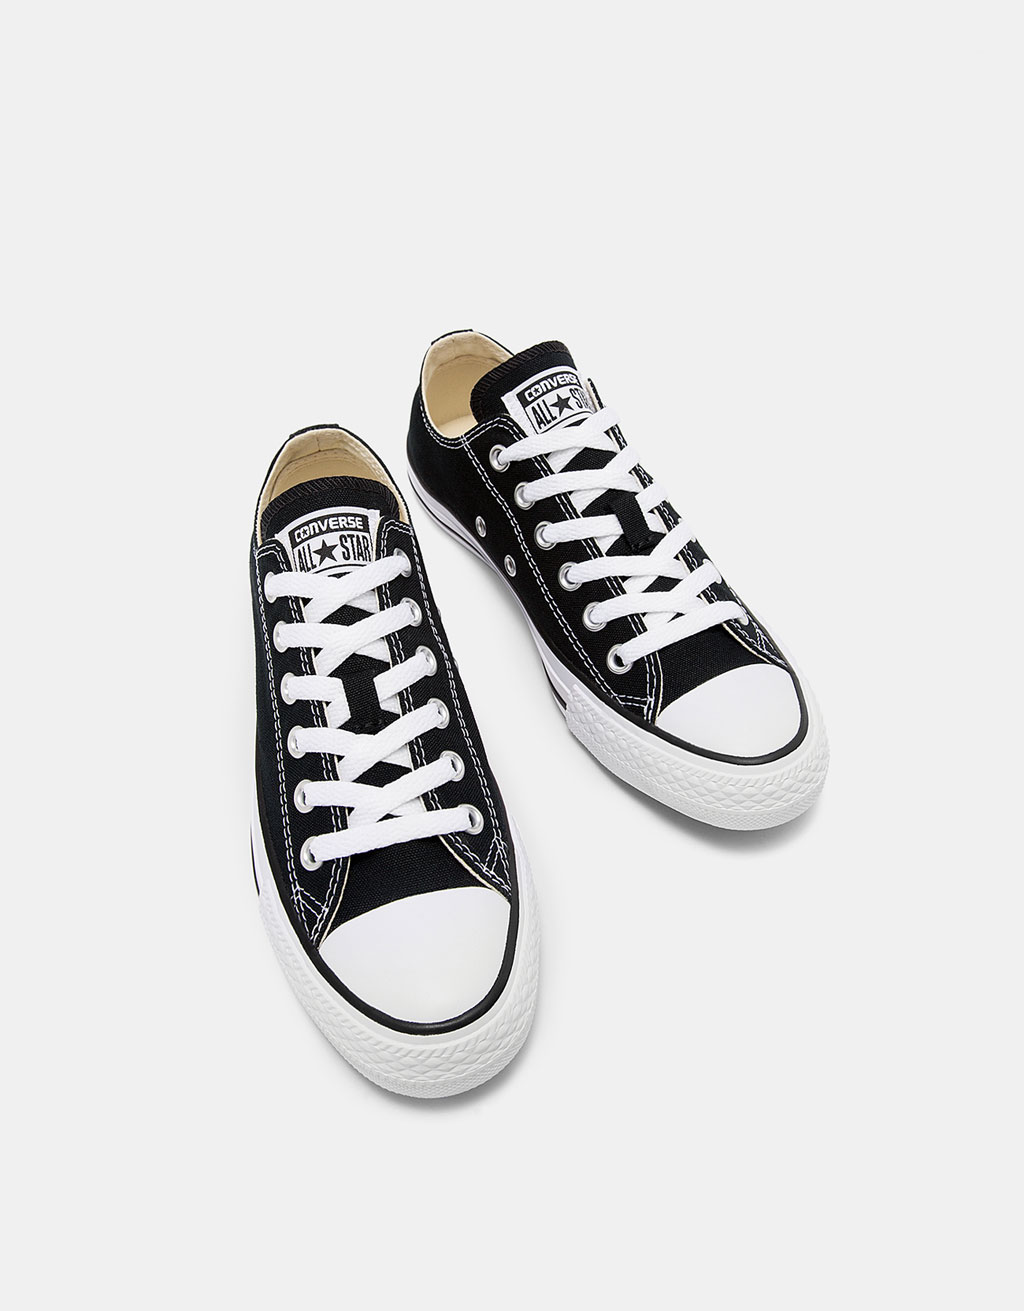 CONVERSE ALL STAR men's canvas sneakers